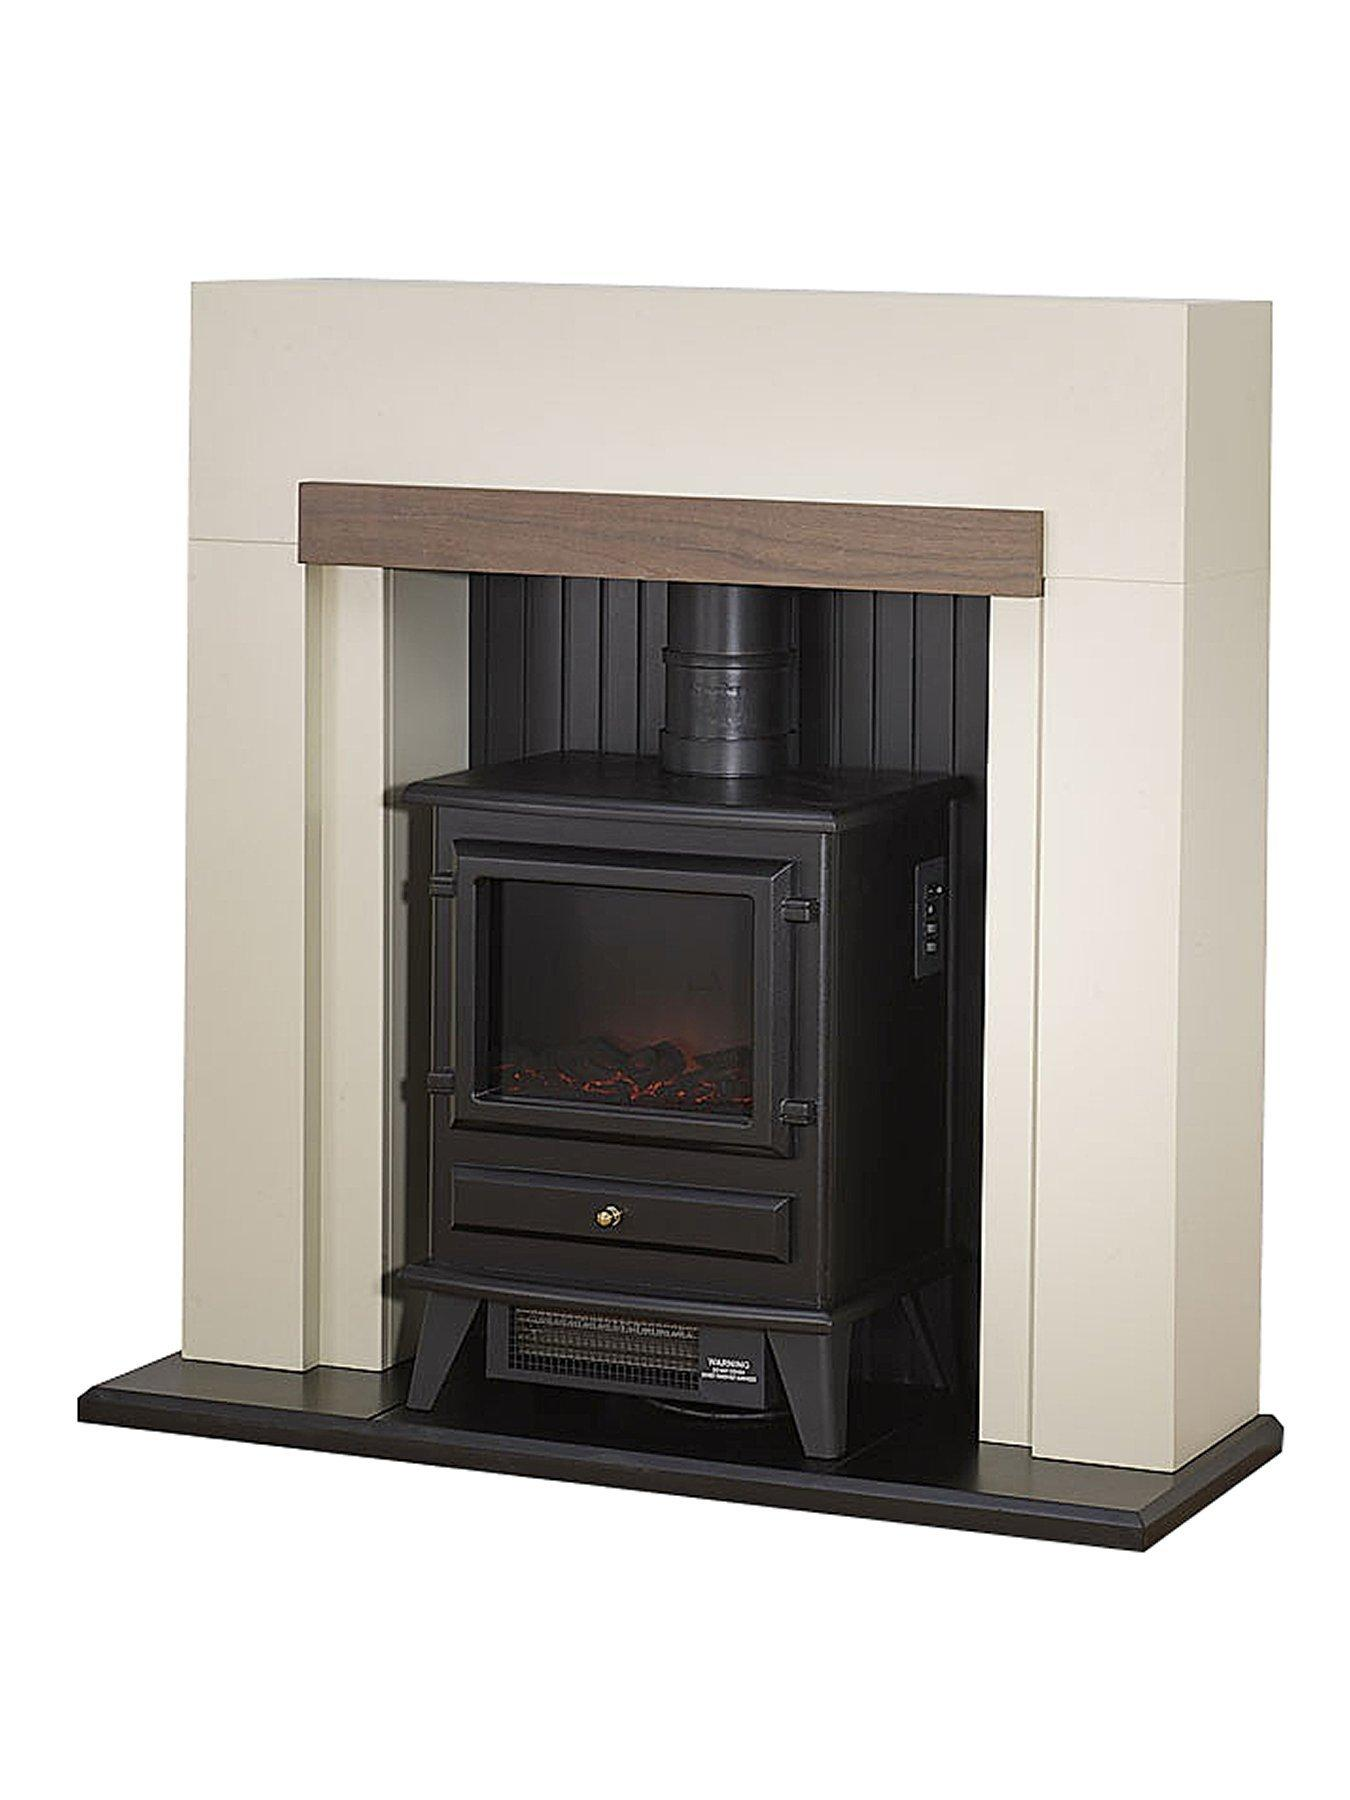 Compare prices for Adam Fire Surrounds Salzberg Electric Fire Suiteplace With Stove